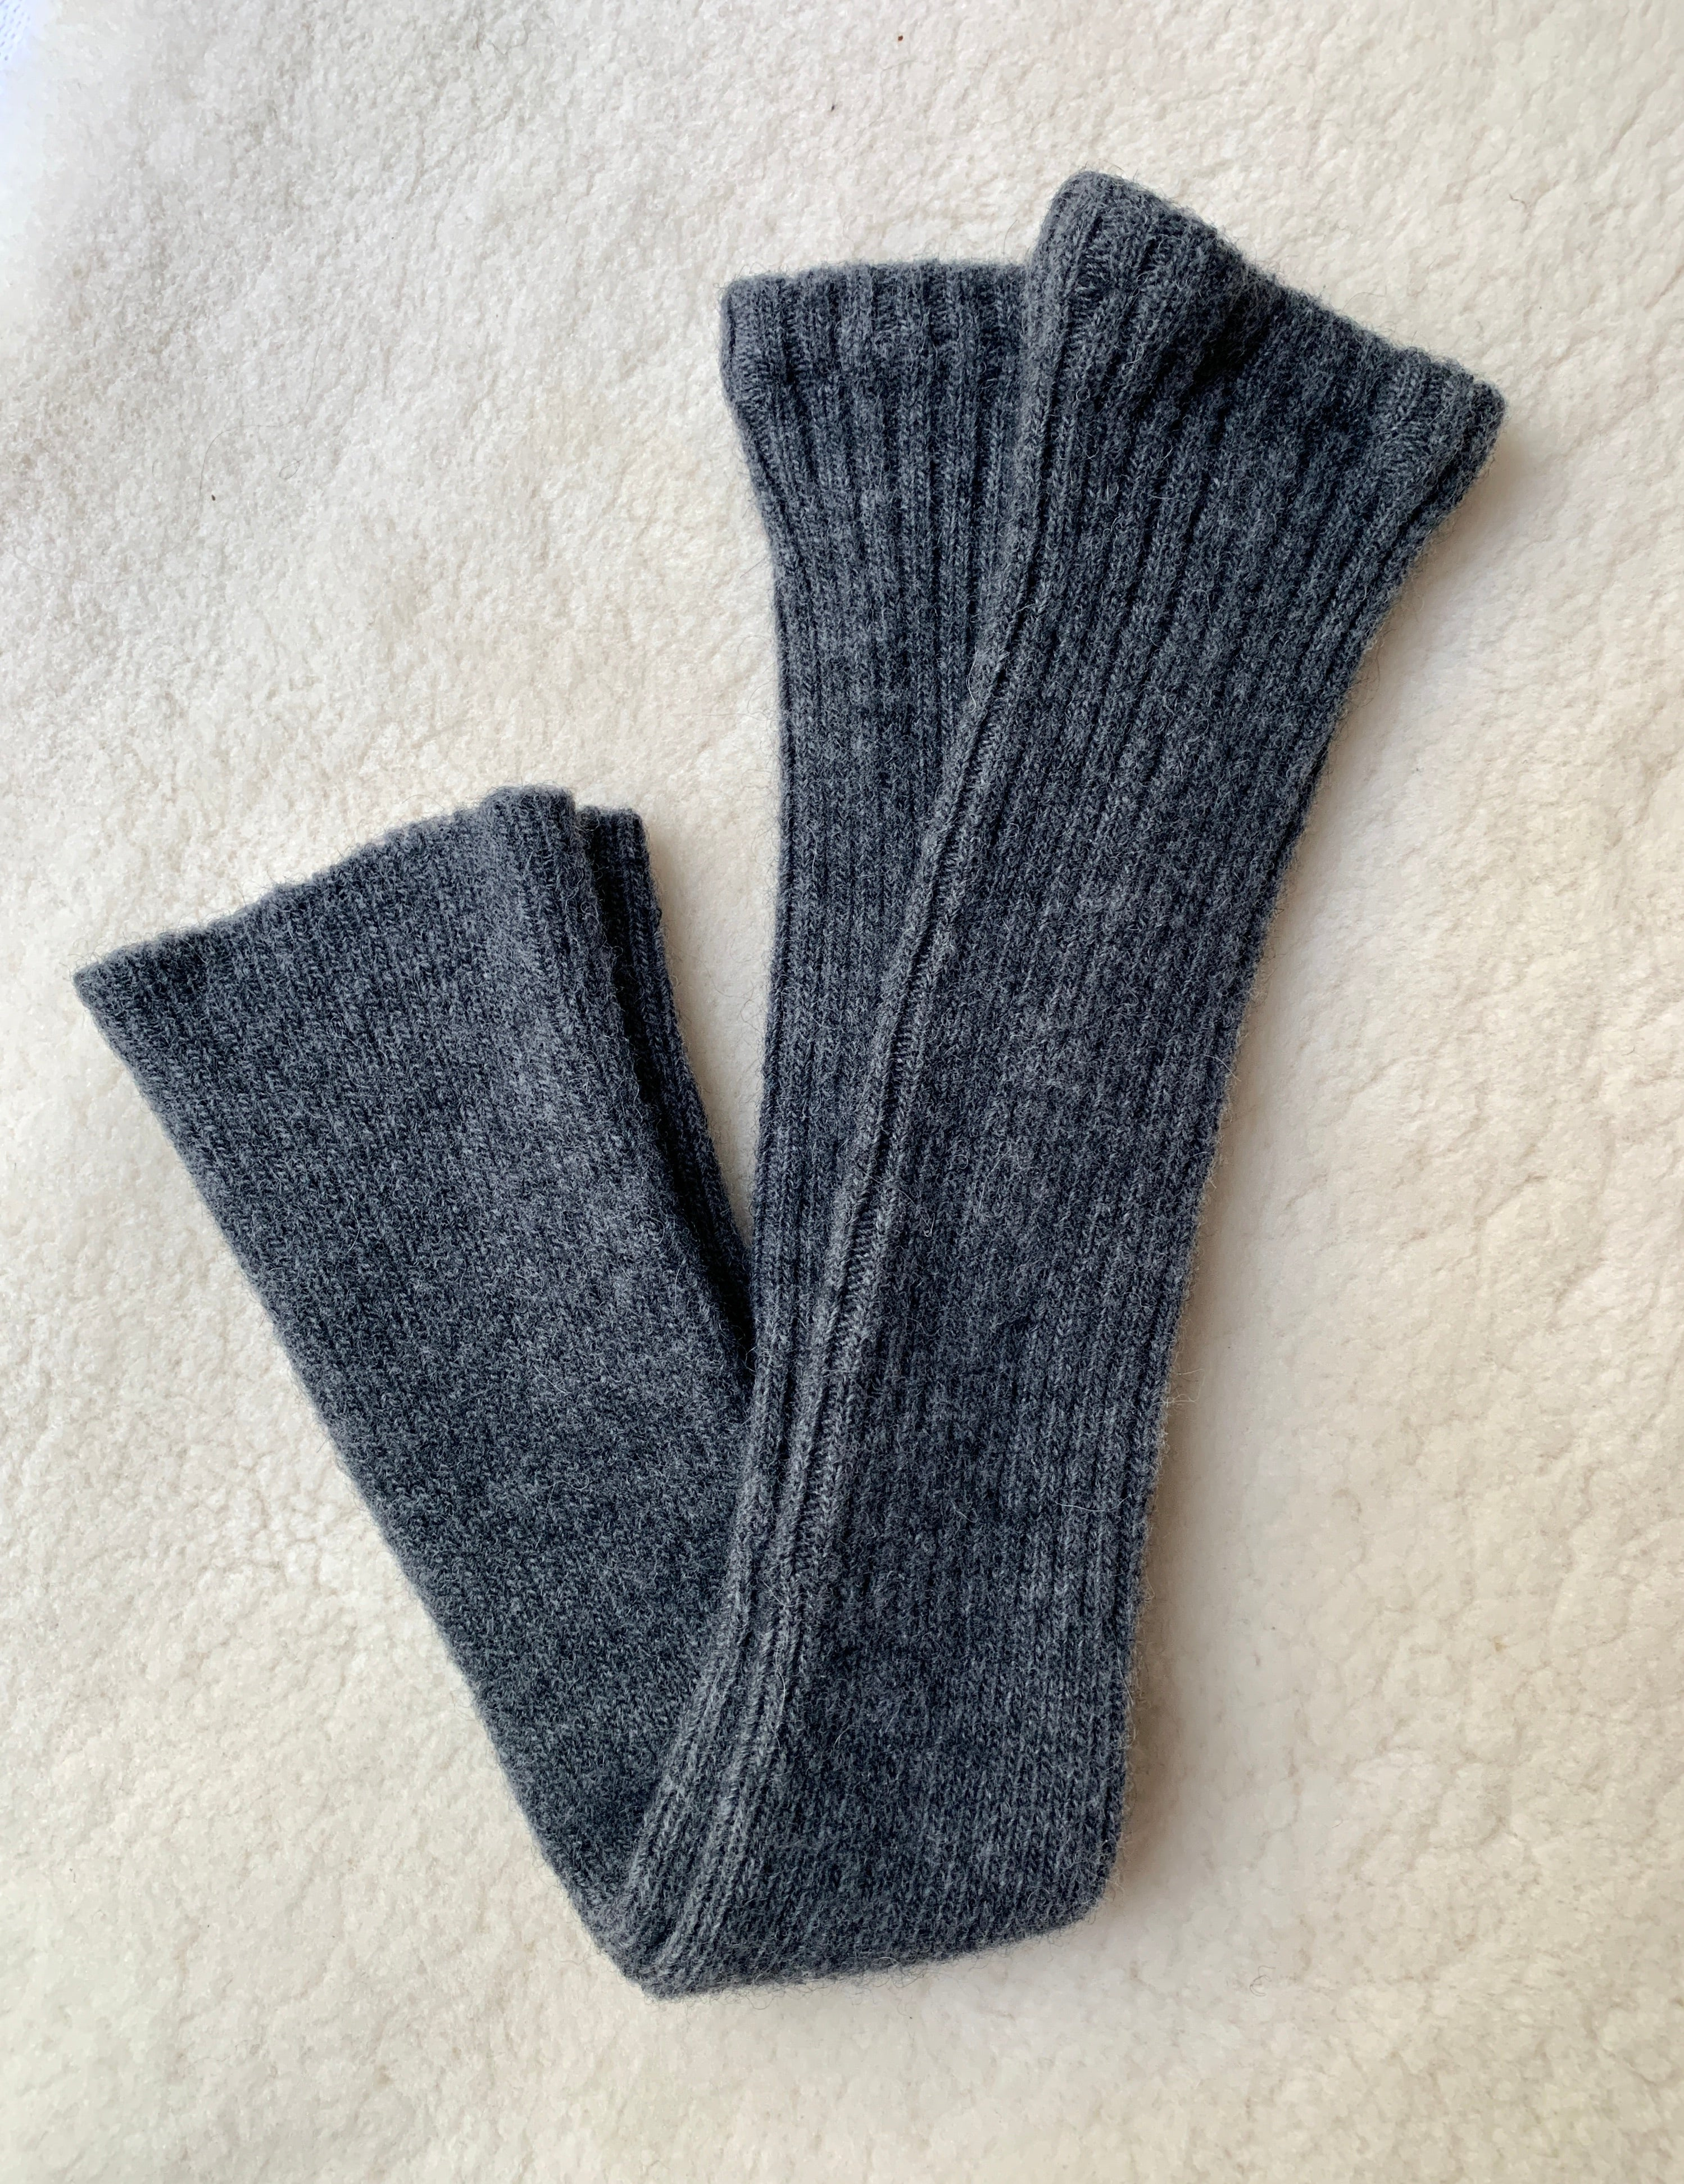 Alpaca Arm/Leg Warmers: Charcoal